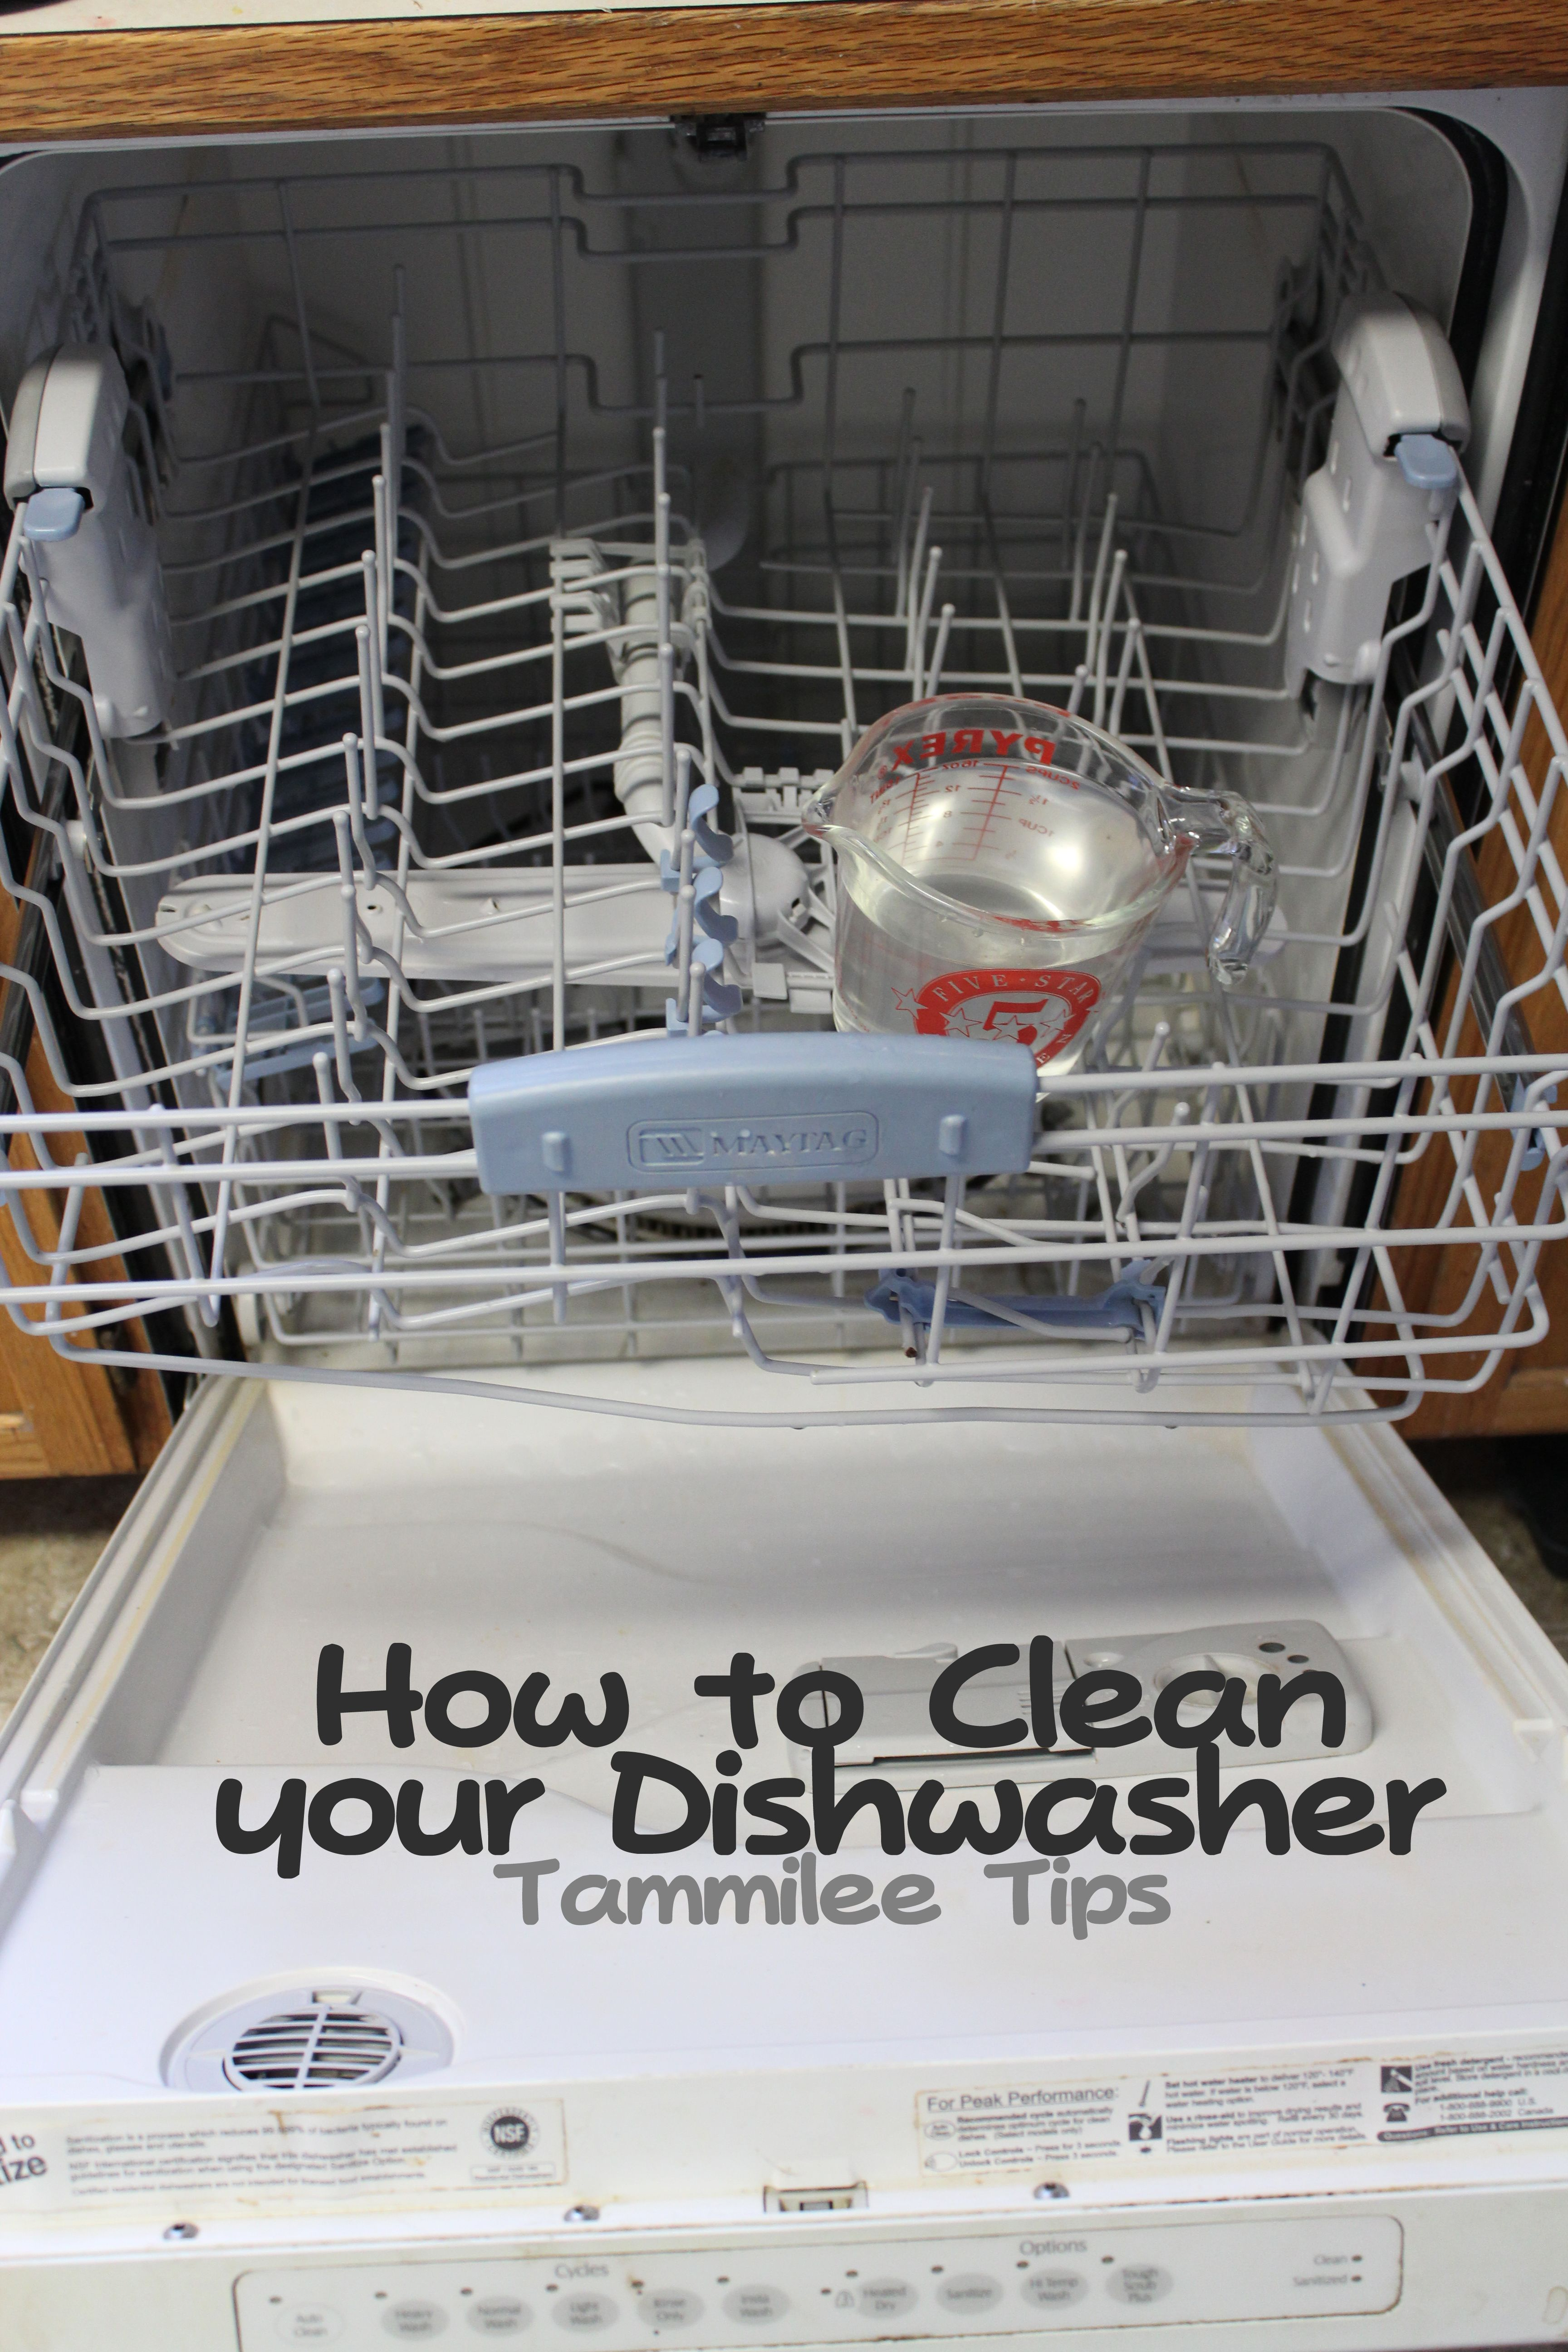 How To Clean A Dishwasher 1000 Images About Cleaning Tips On Pinterest Cleanses Posts